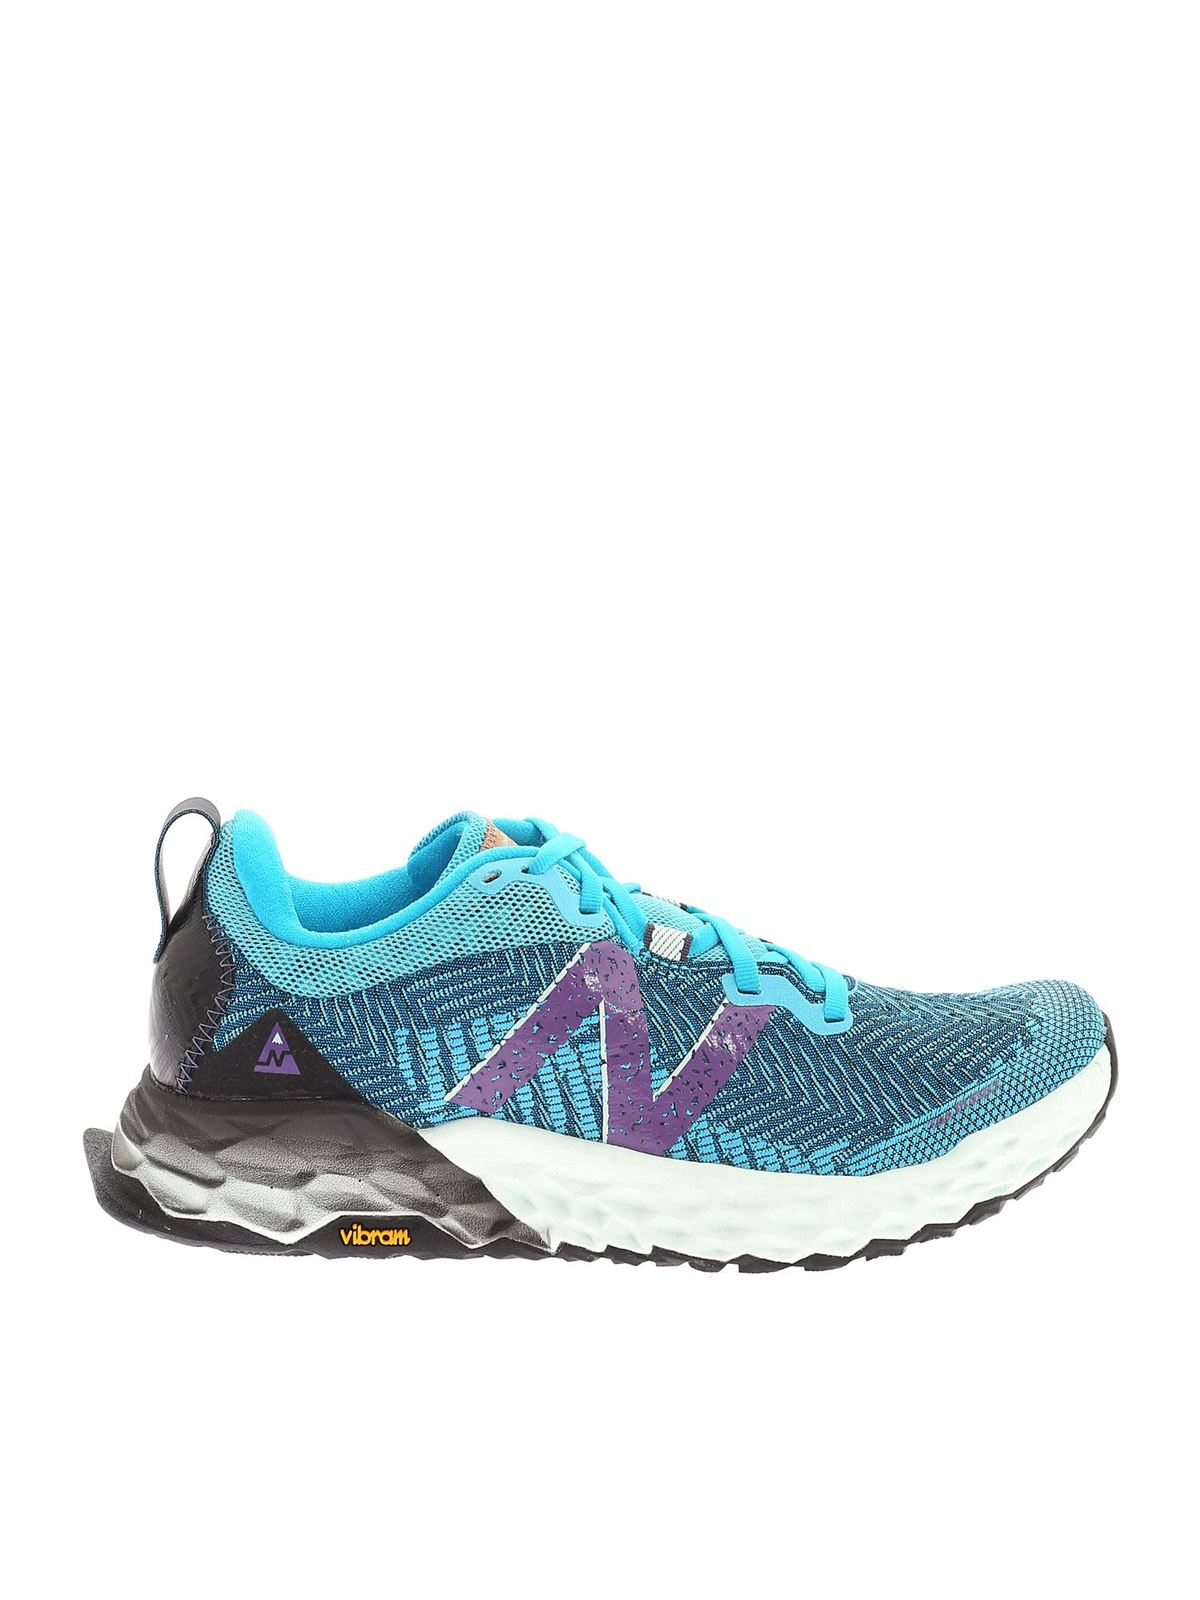 Sneakers New Balance - Sneakers color turchese con logo - WTHIERV6